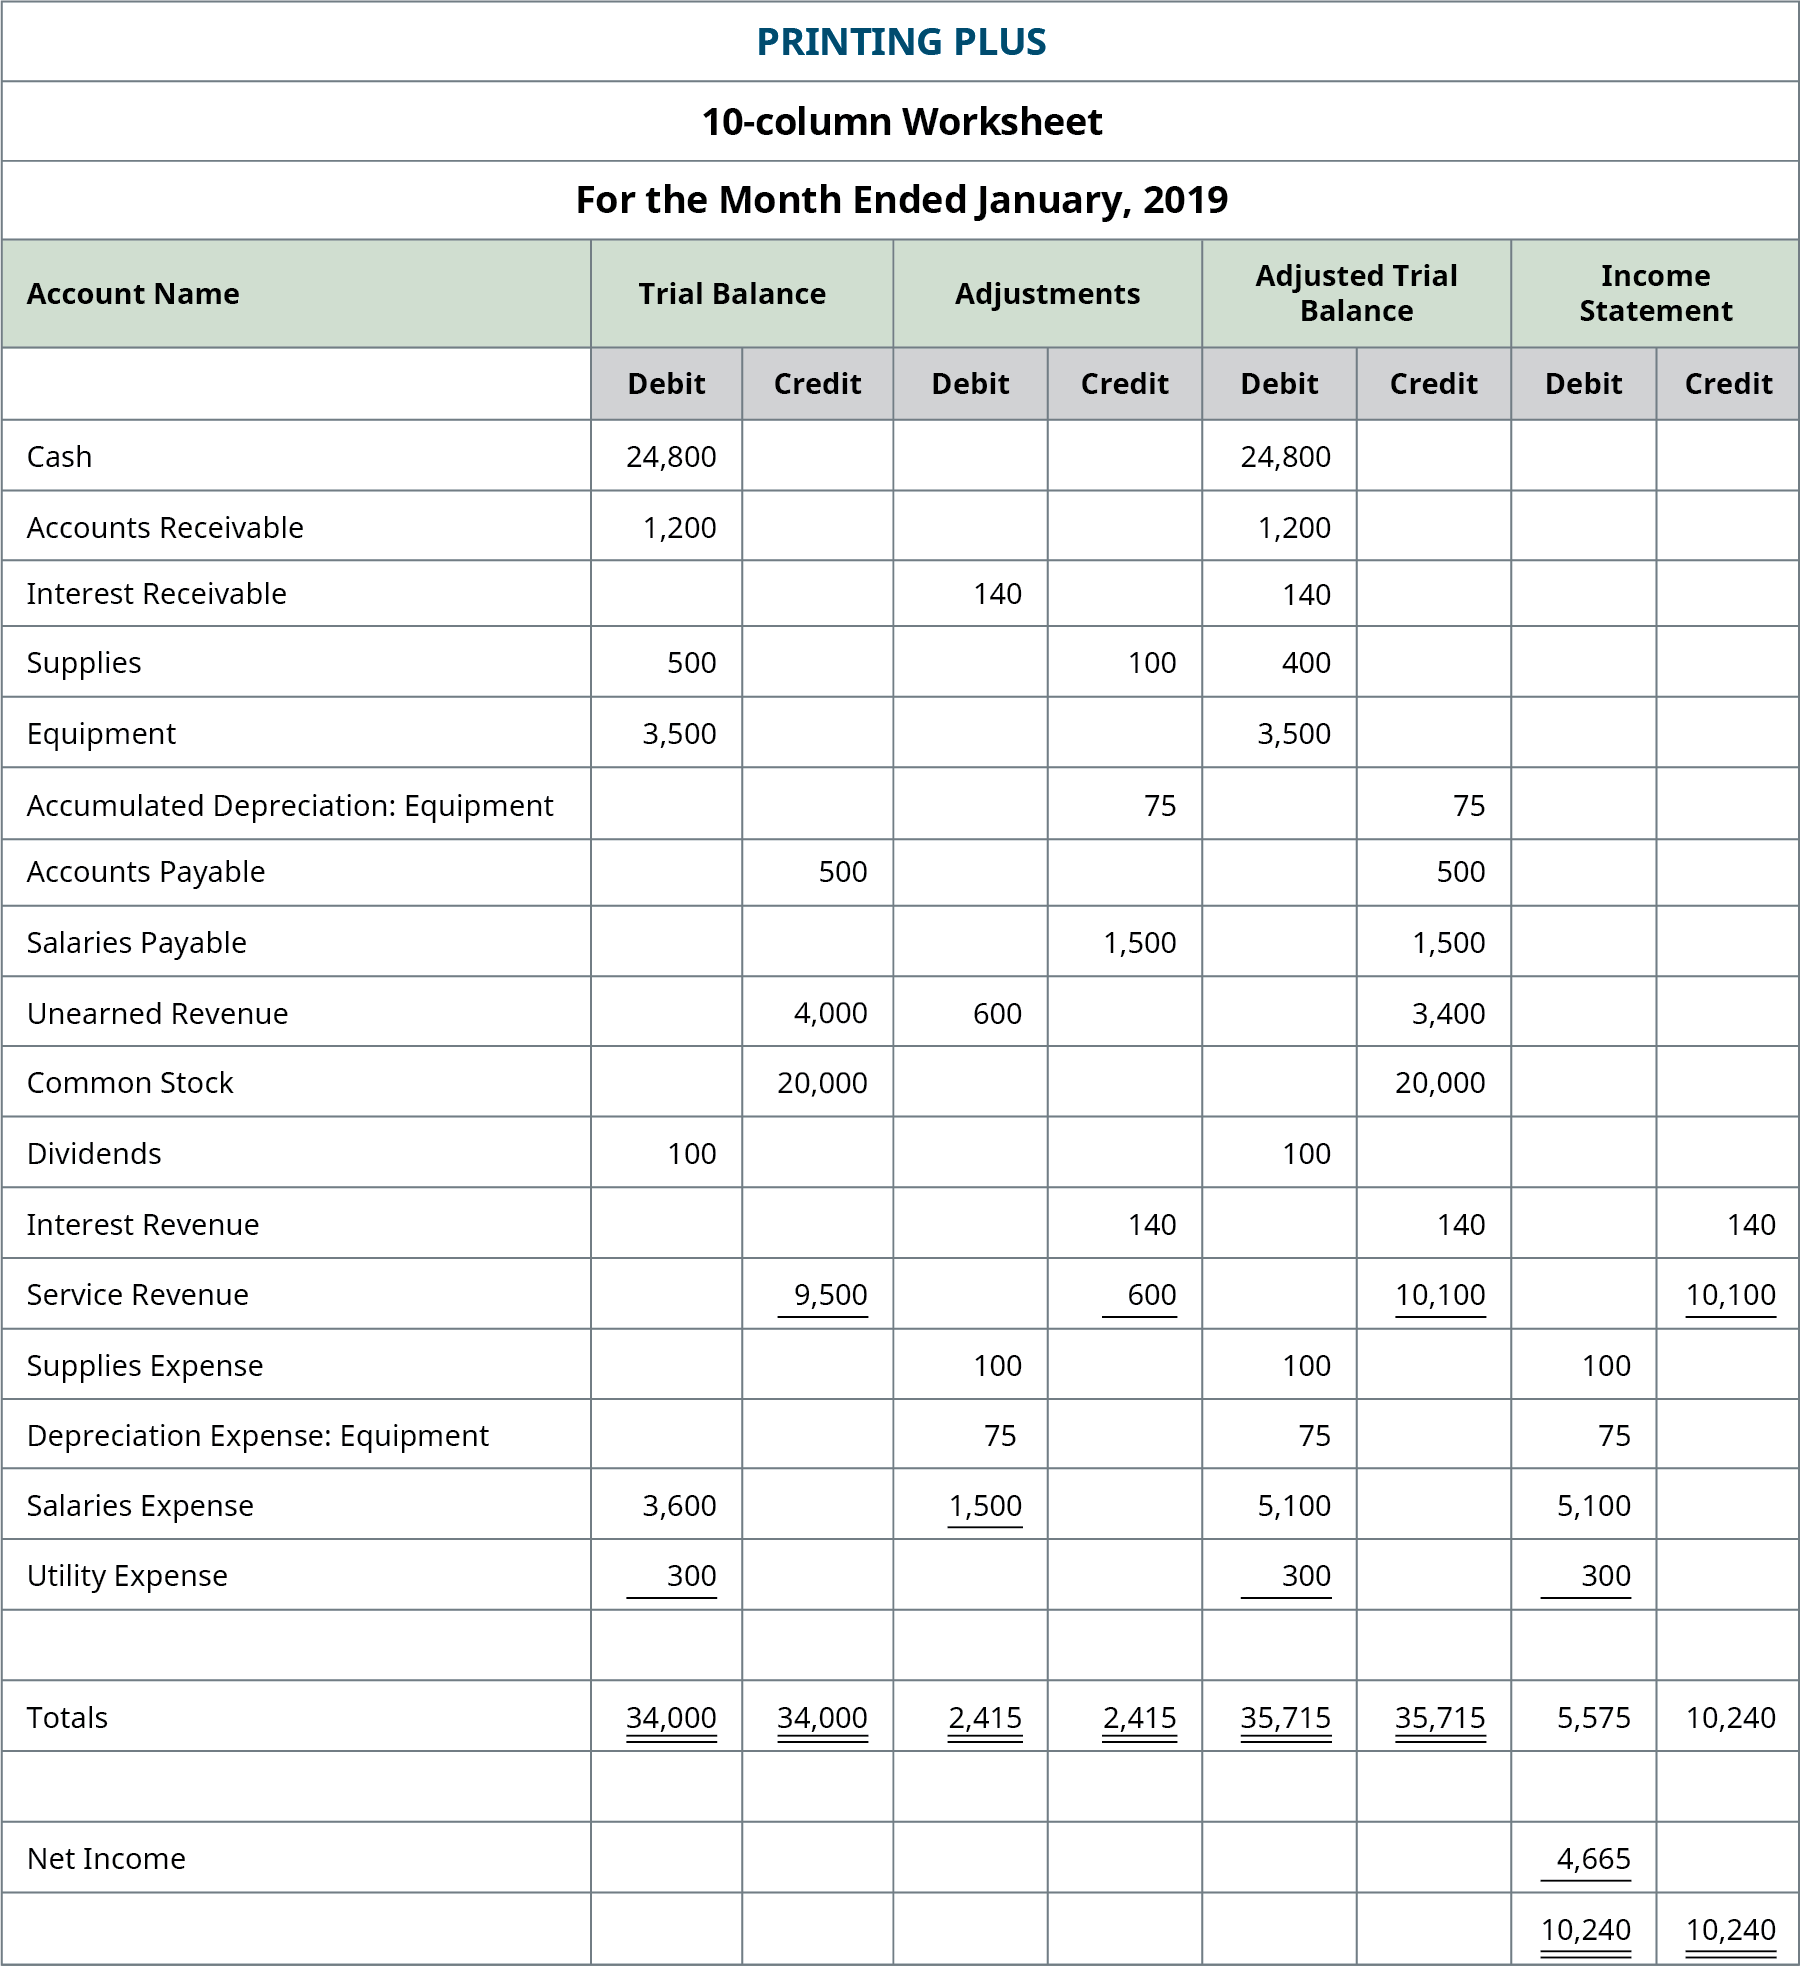 Excerpt from Printing Plus worksheet, adding the Income Statement columns. Credit column: Interest Revenue 140; Service Revenue 10,100; Total Credit Column 10,240. Debit column: Supplies Expense 100; Depreciation Expense: Equipment 75; Salaries Expense 5,100; Utility Expense 300; Sub-Total Debit Column 5,575; Net Income 4,665; Total Debit Column 10,240.